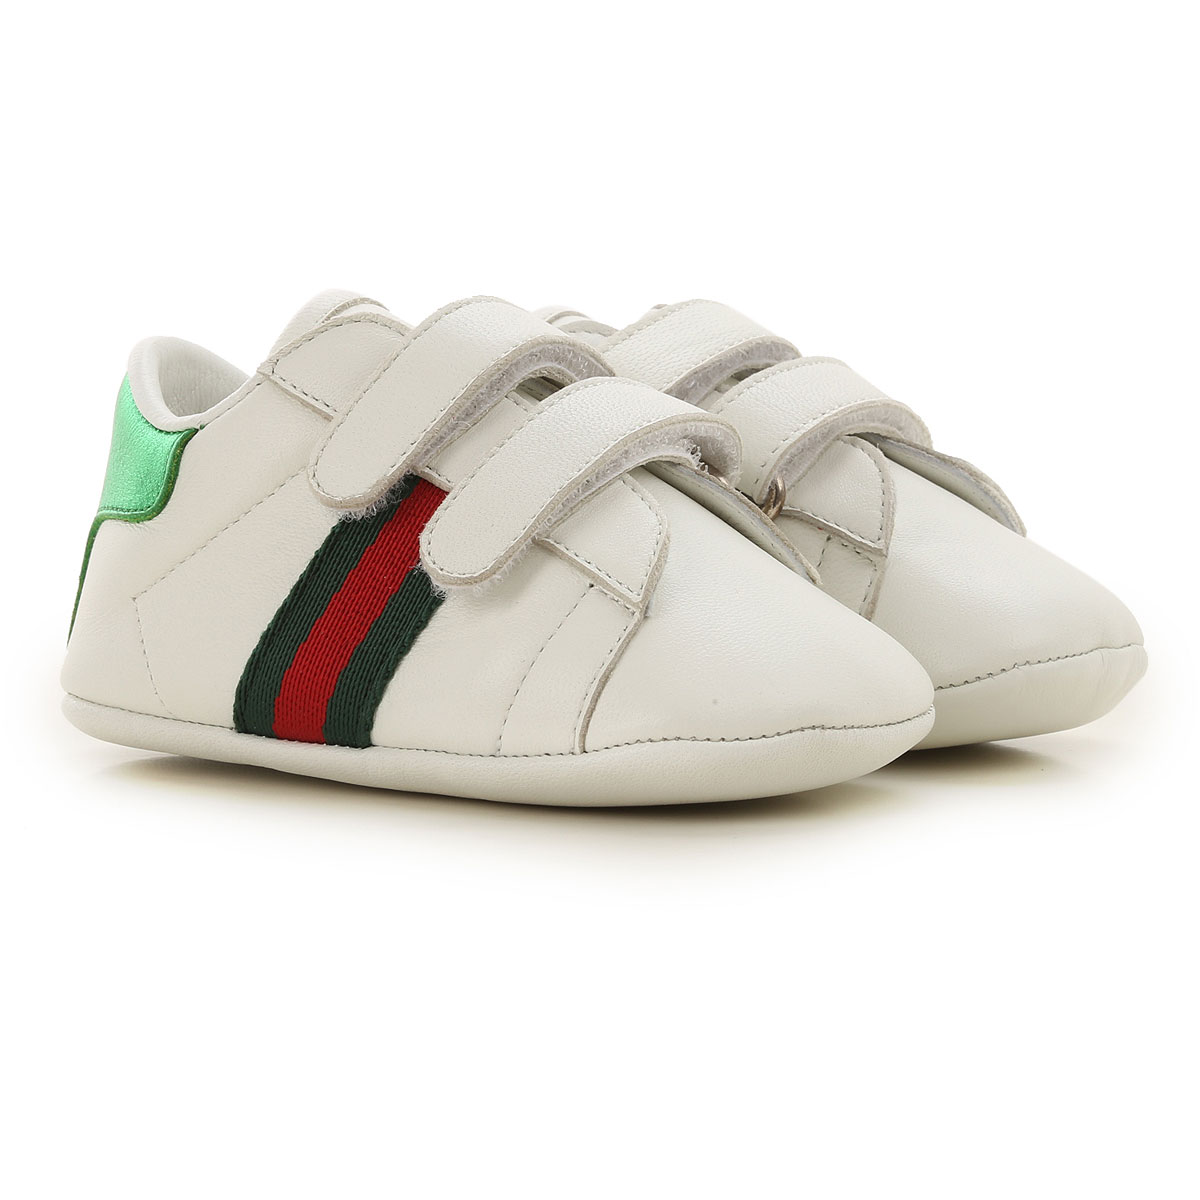 Baby Boy Clothing Gucci, Style code: 500852-bkpt0-9070